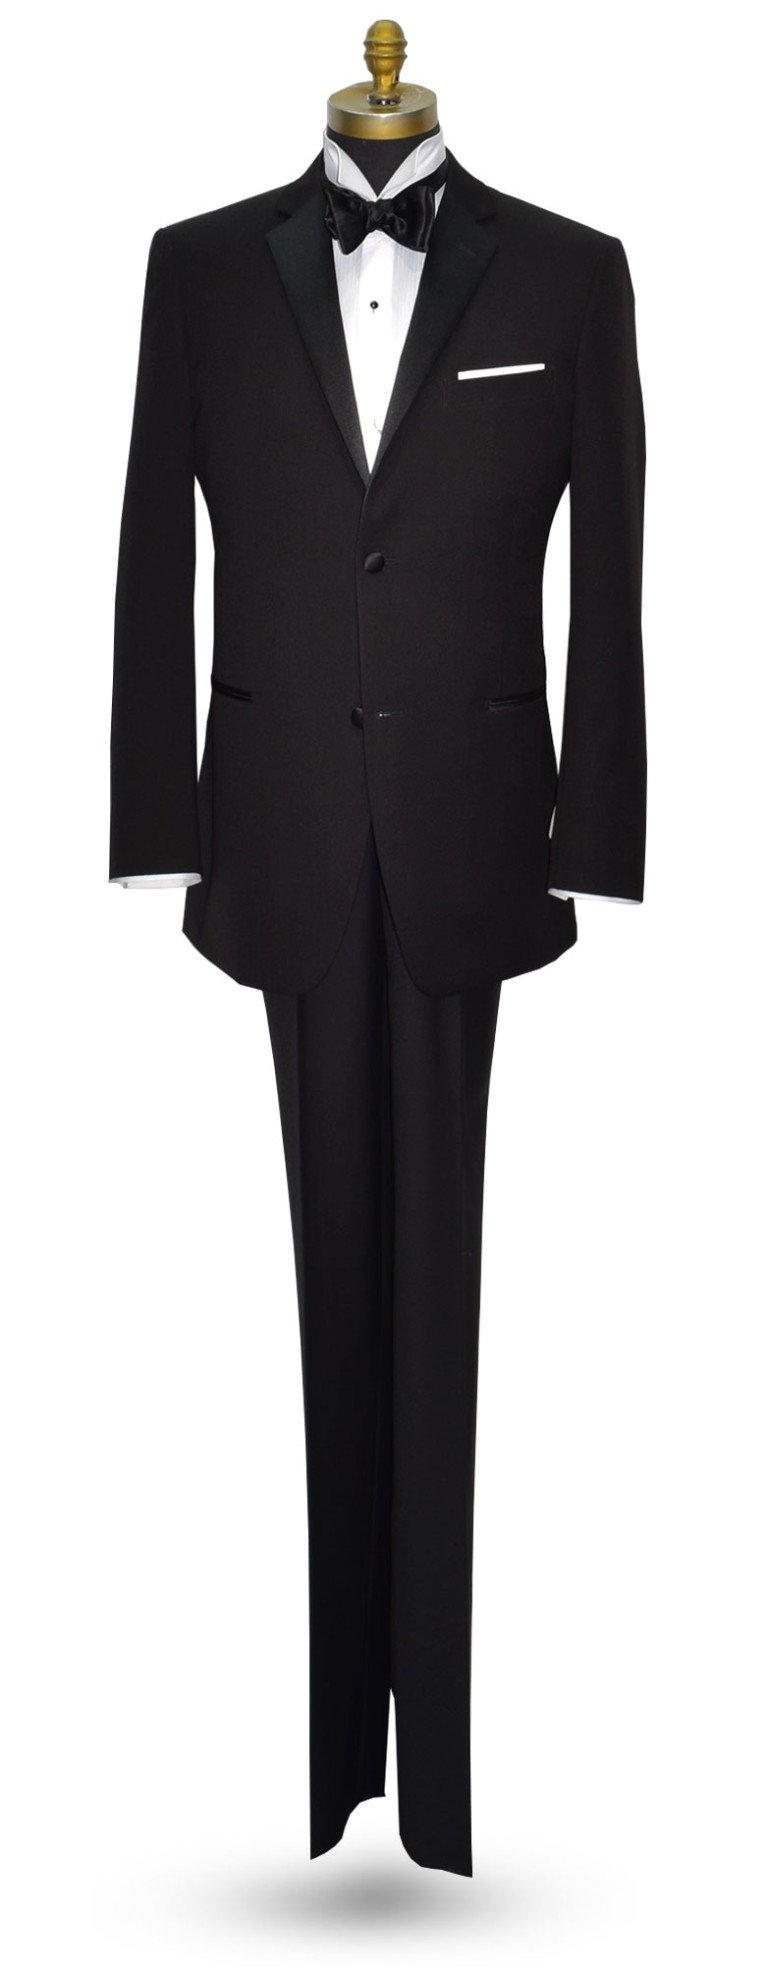 suit rental services san diego, ca